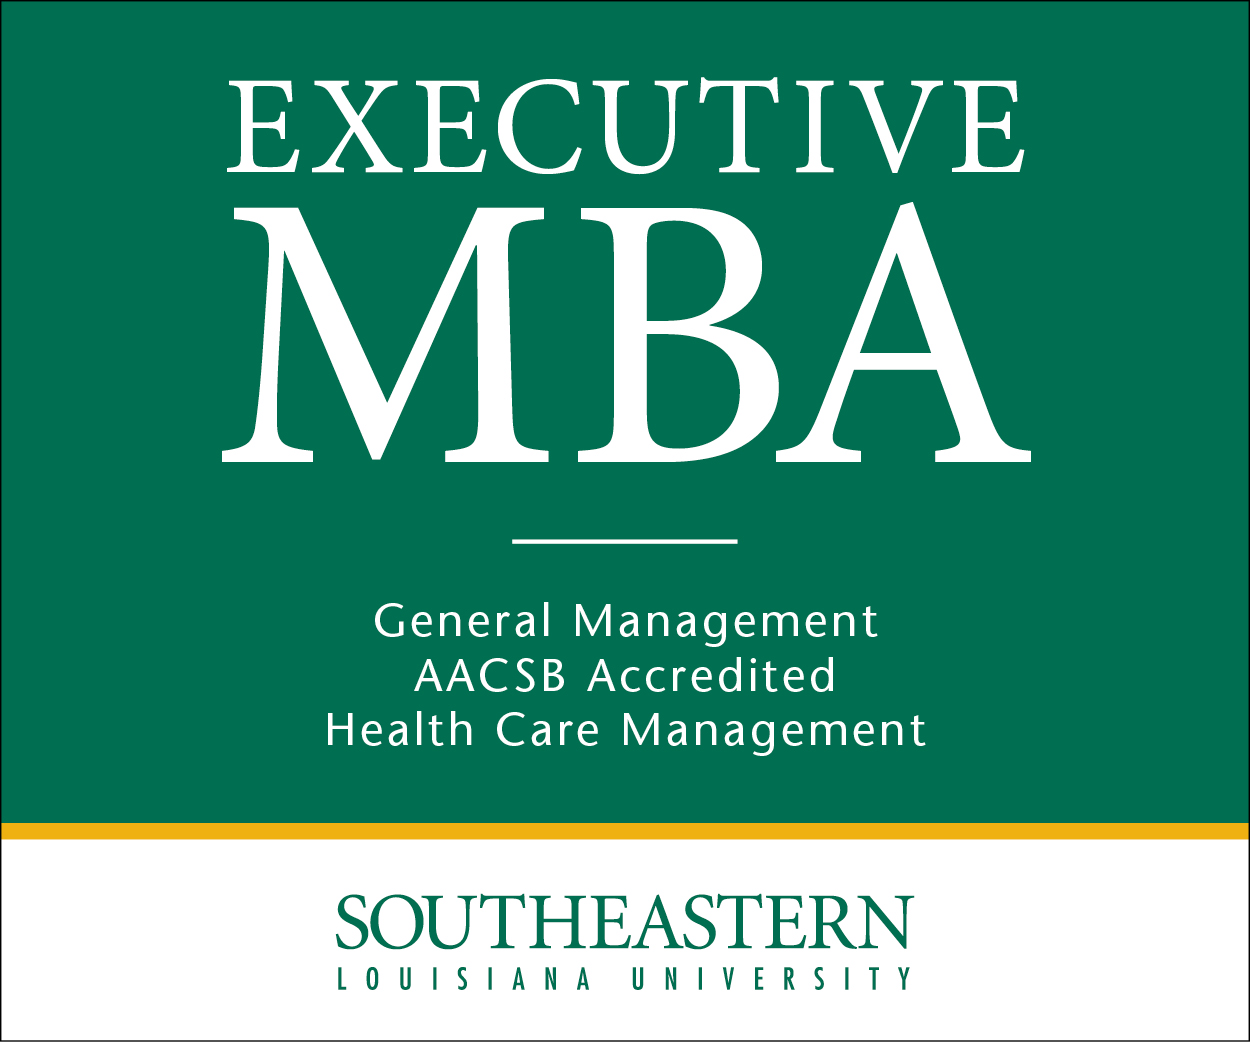 Southeastern Executive MBA